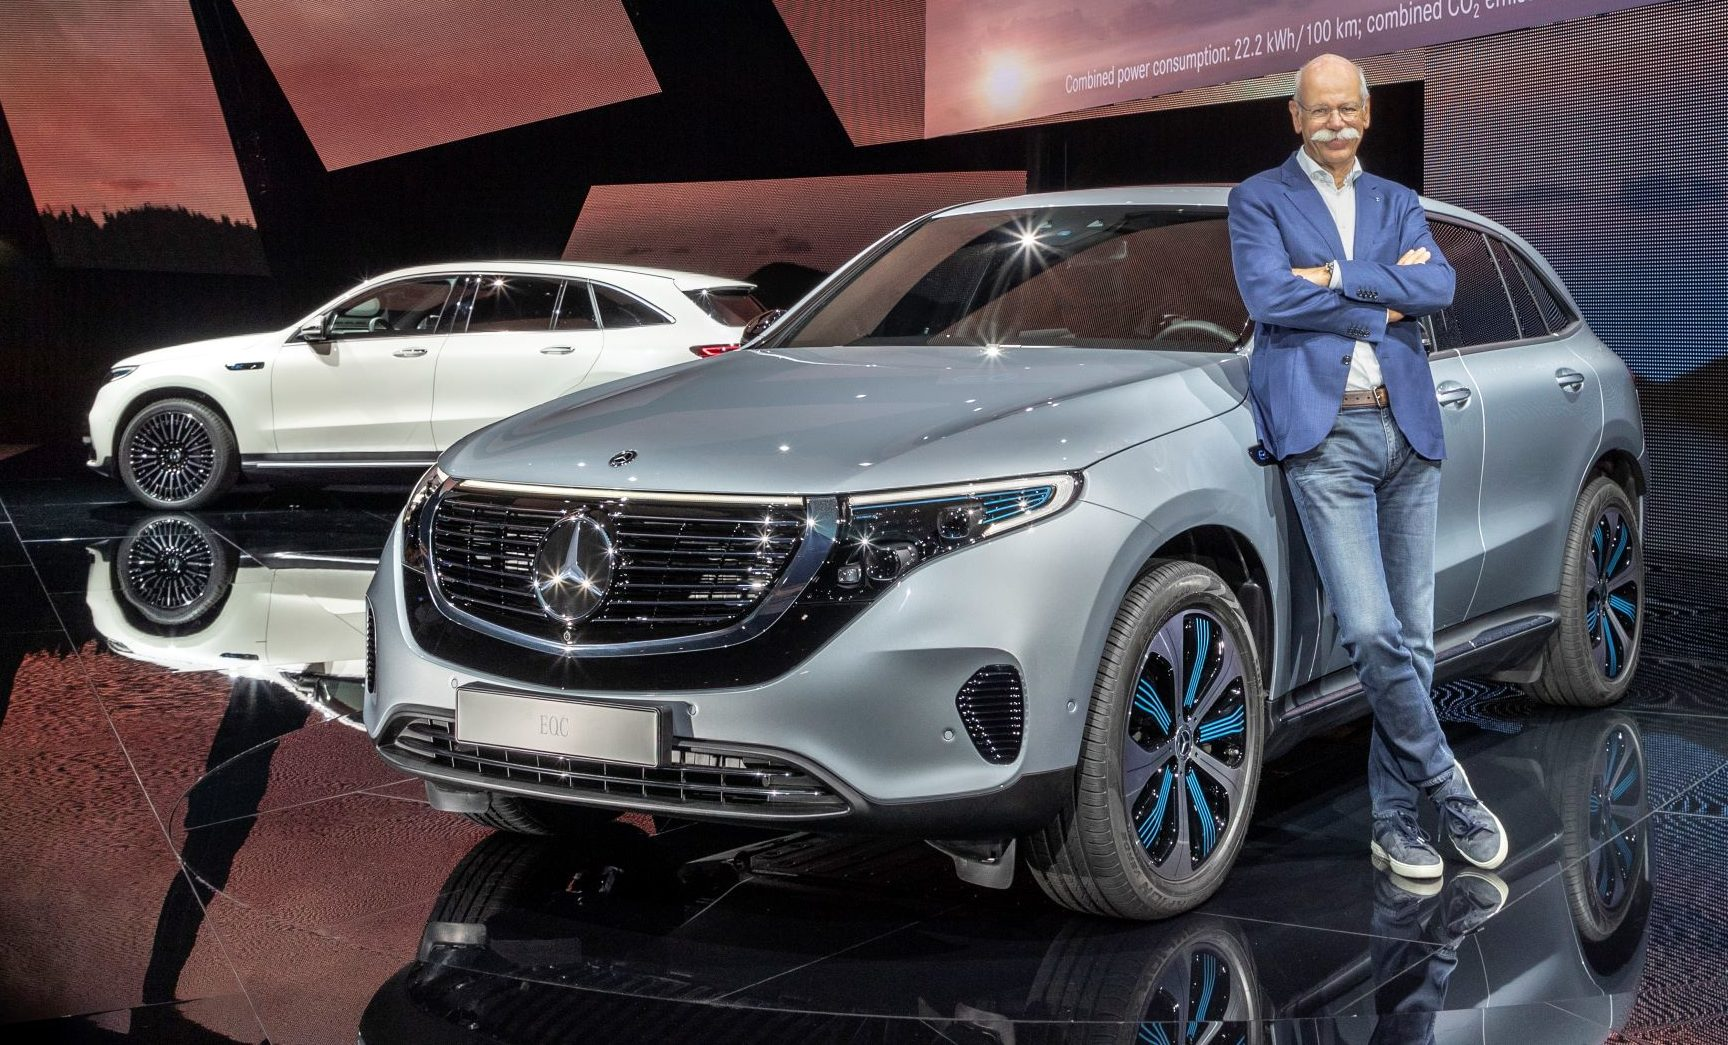 Once-hailed 'Tesla Killer' Mercedes-Benz EQC sells less than 700 since launch: report